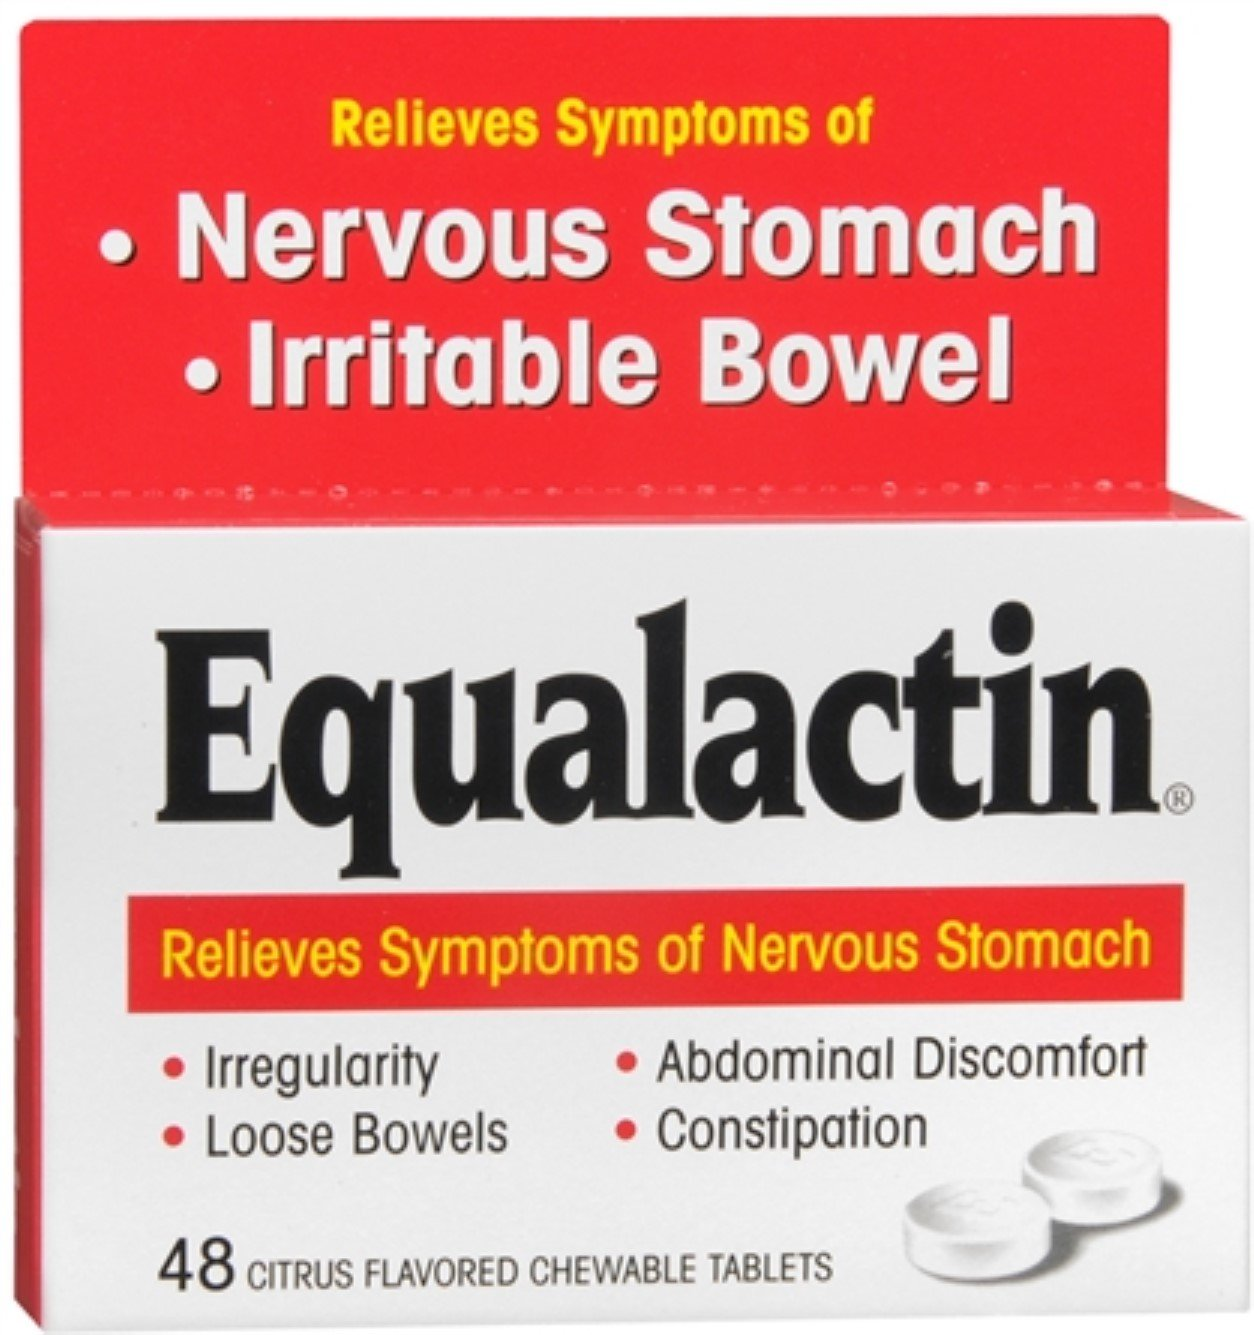 Equalactin Chewable Tablets 48 Tablets (Pack of 12) by Equalactin